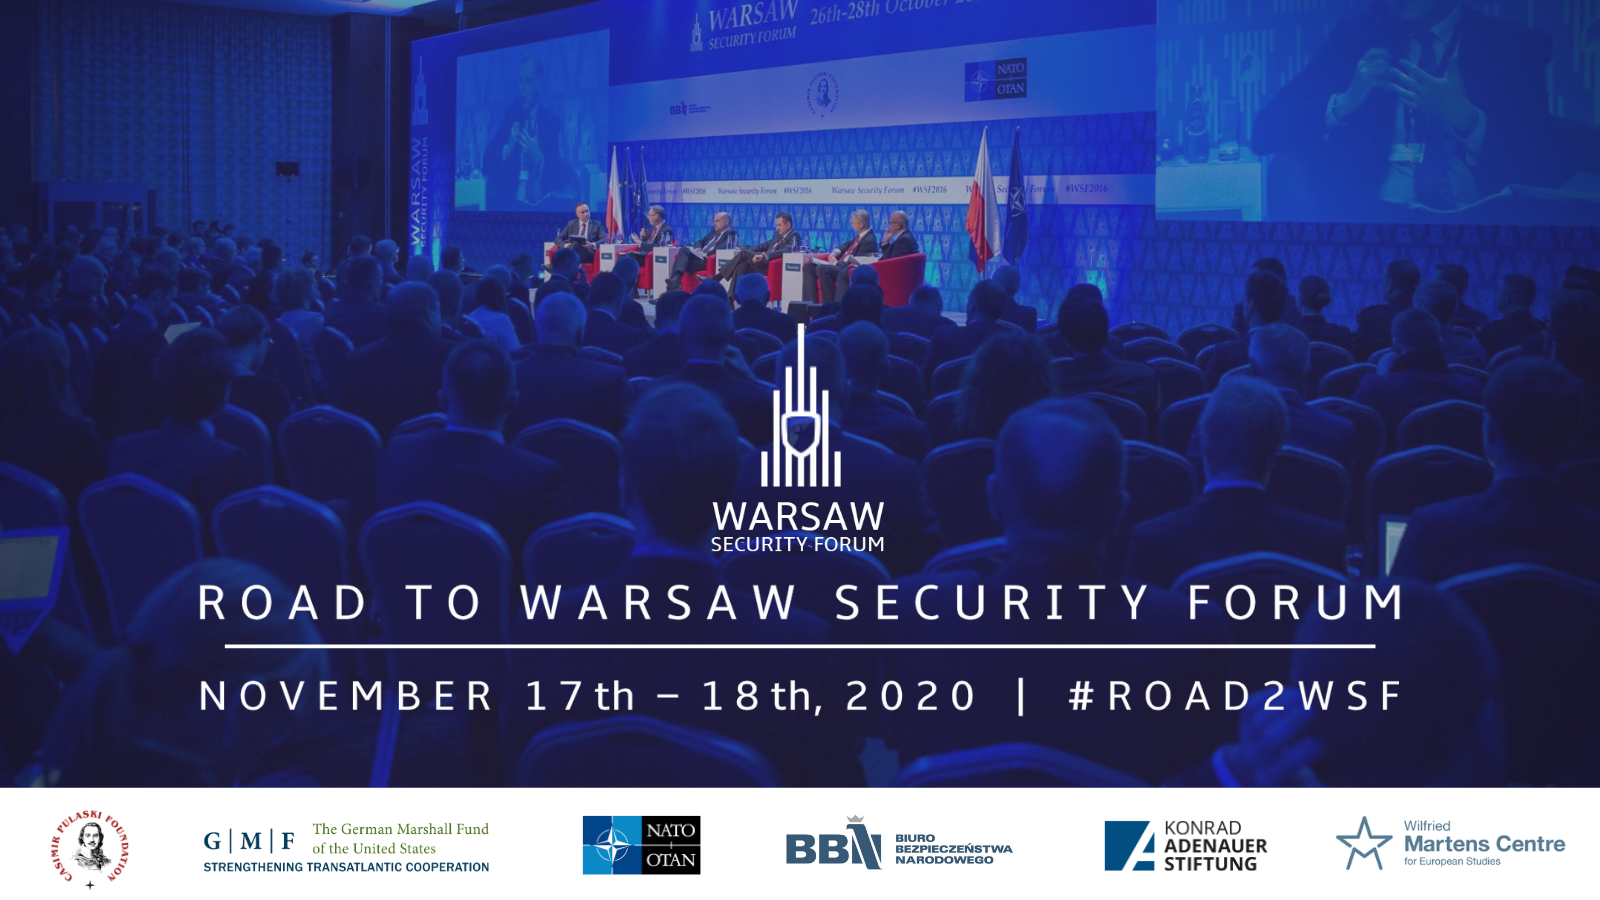 Warsaw Security Forum(#Road2WSF) 17th-18th of November 2020